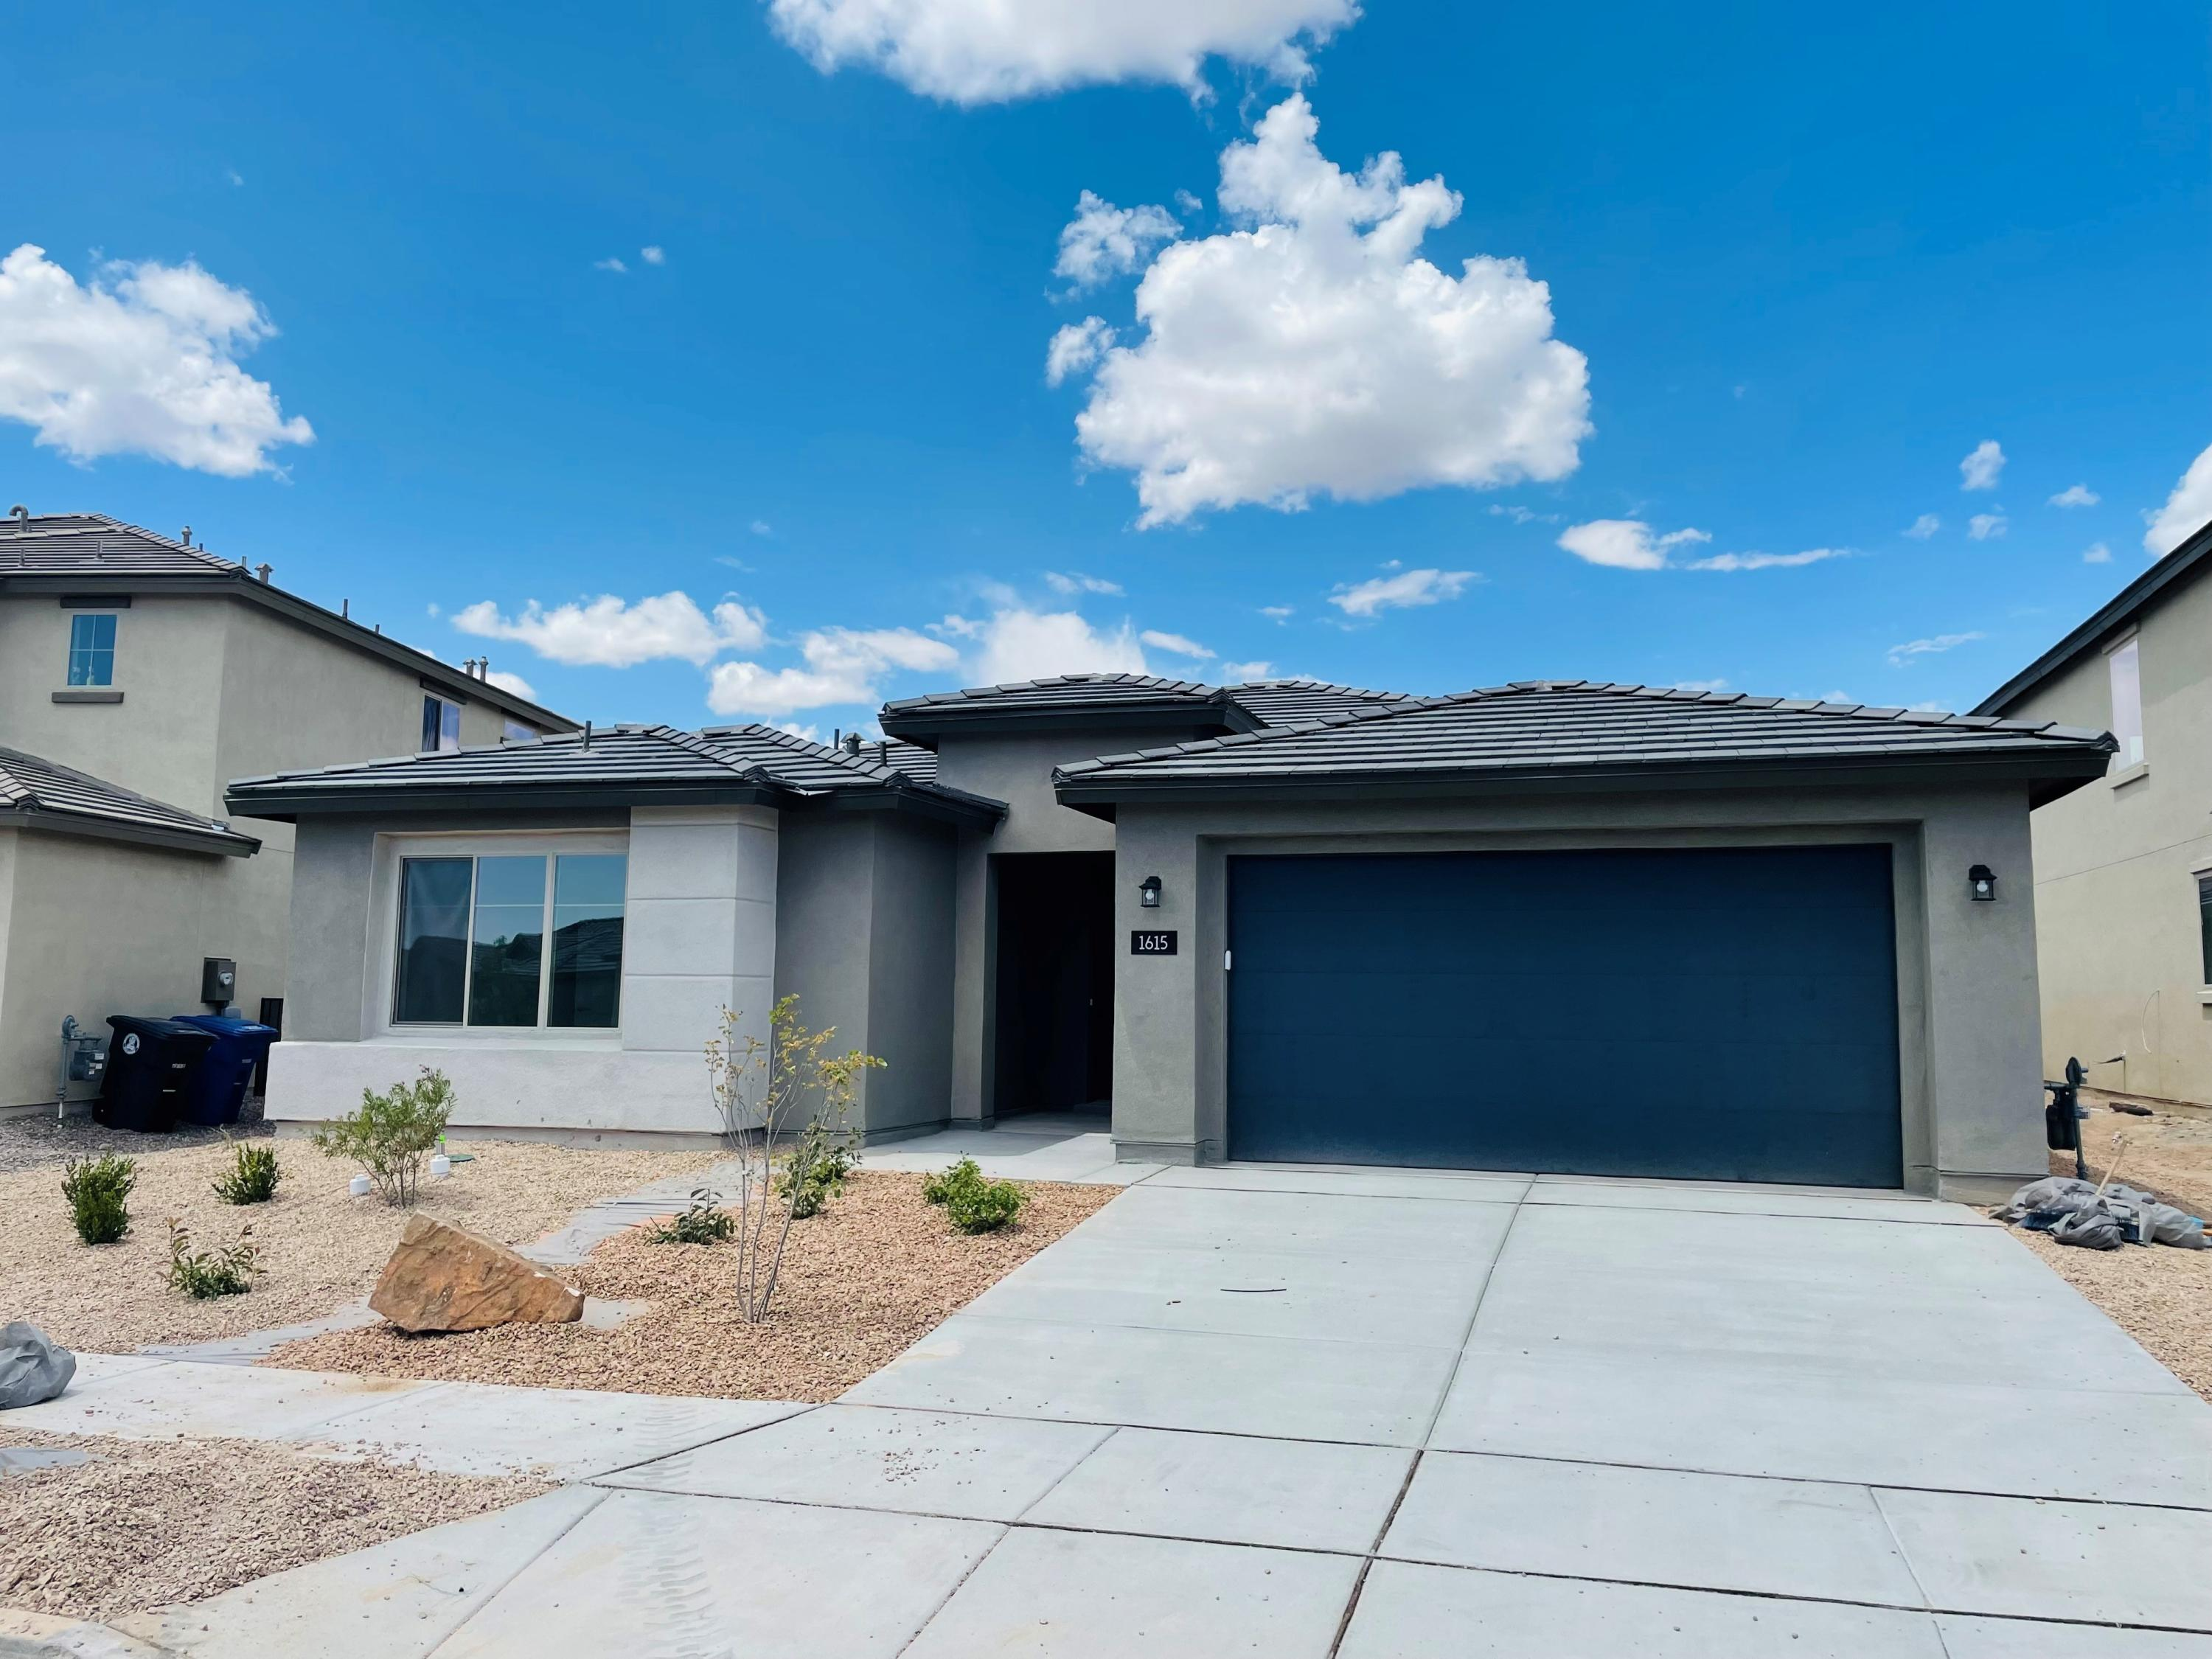 Ready to move in! New Construciton built by Pulte Homes. (Parklane Model) 4 bedroom 3 Full bathrooms and 1 - 1/2 bath! Upgraded appliances/ Gas stub out. Marble counter tops. Quick access to I-40. Amazon nearby.